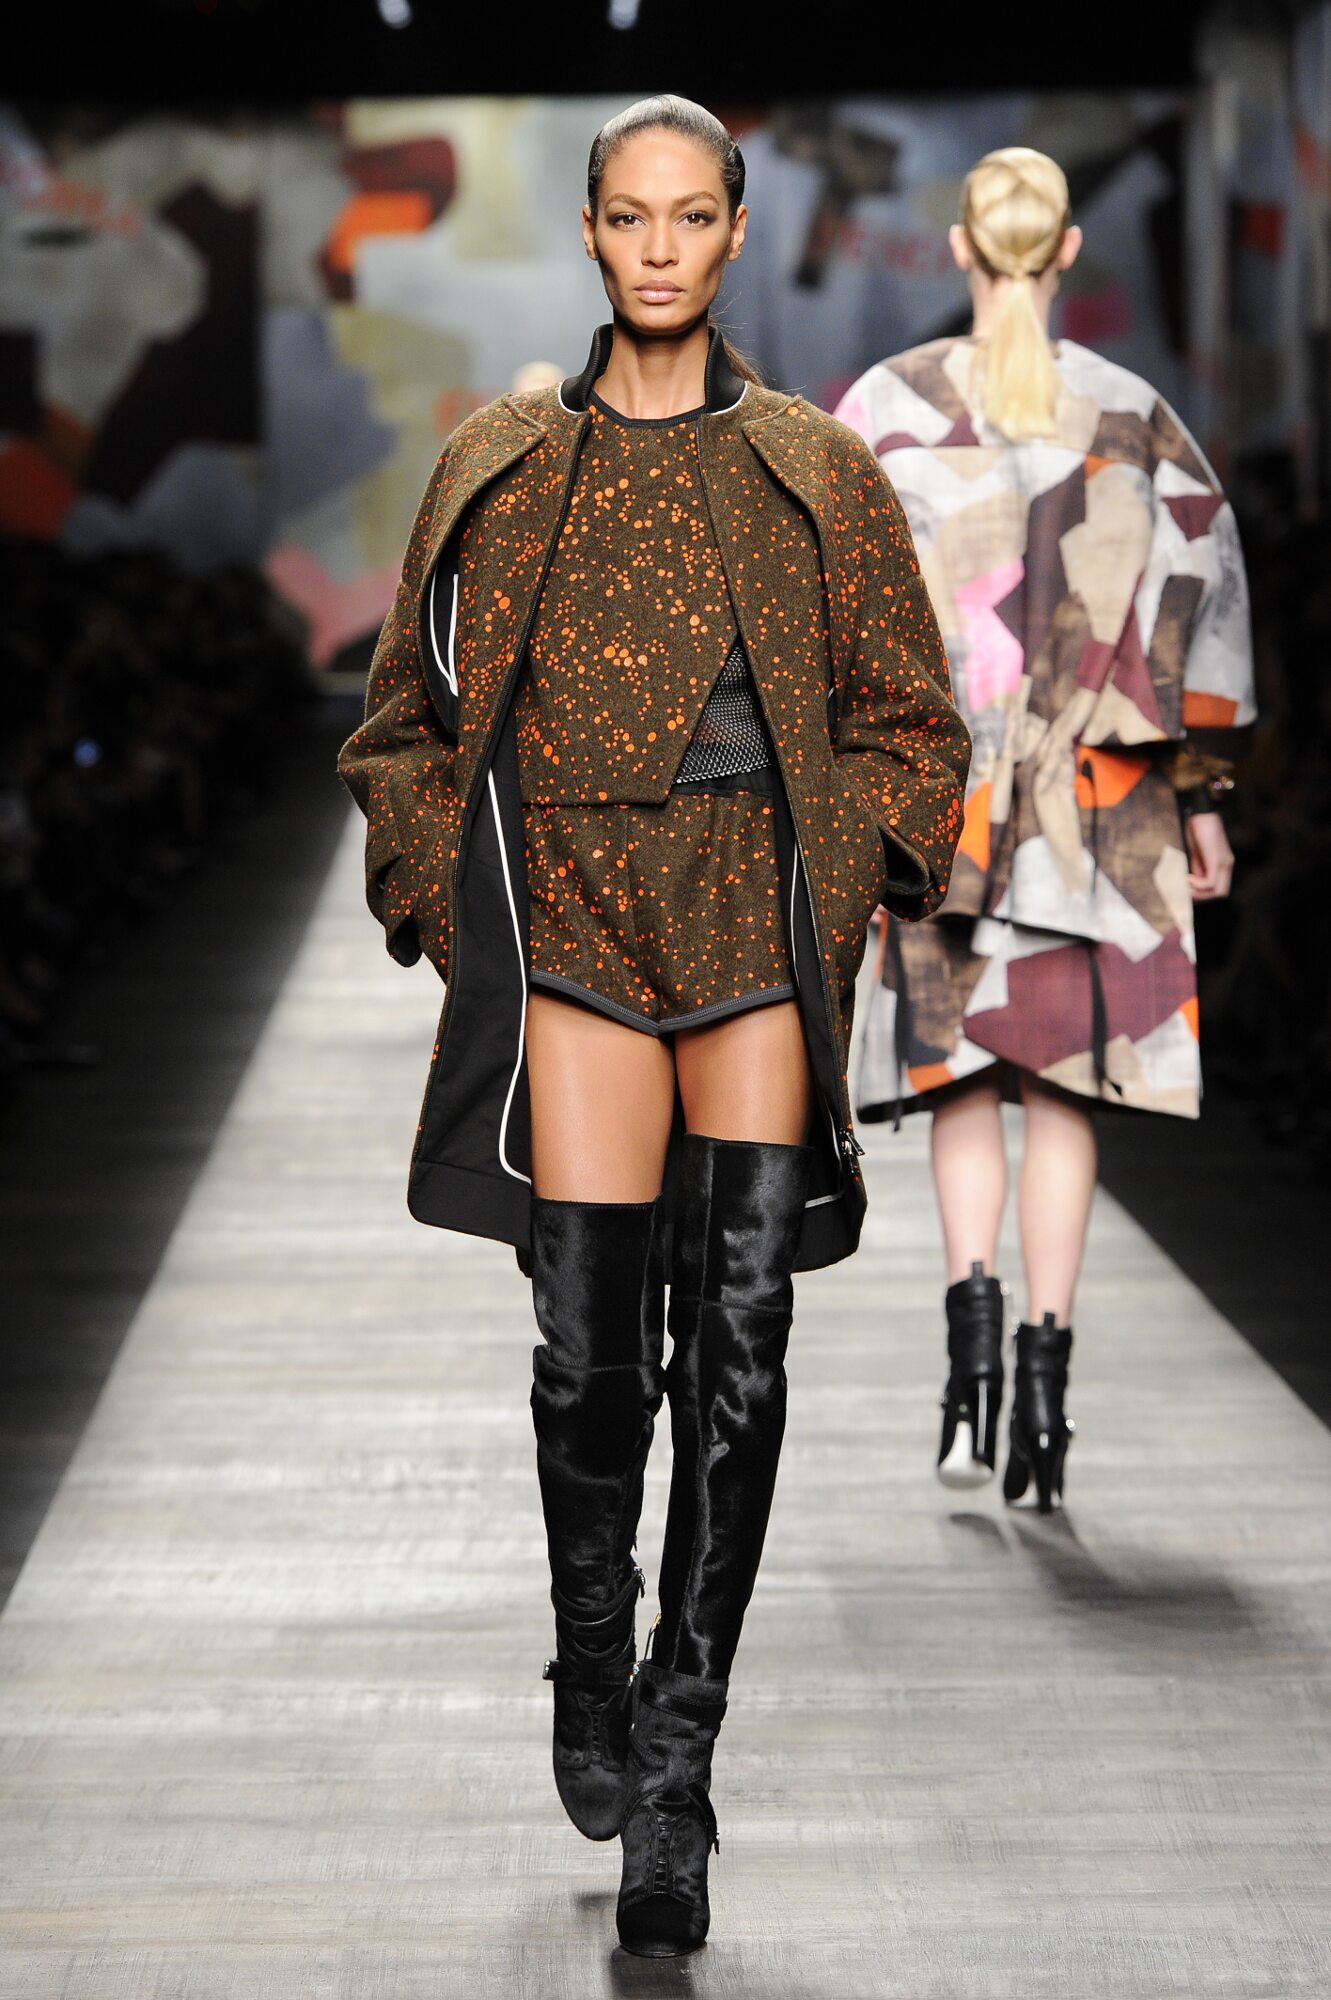 Fashion Show FW 2014 2015 Fendi